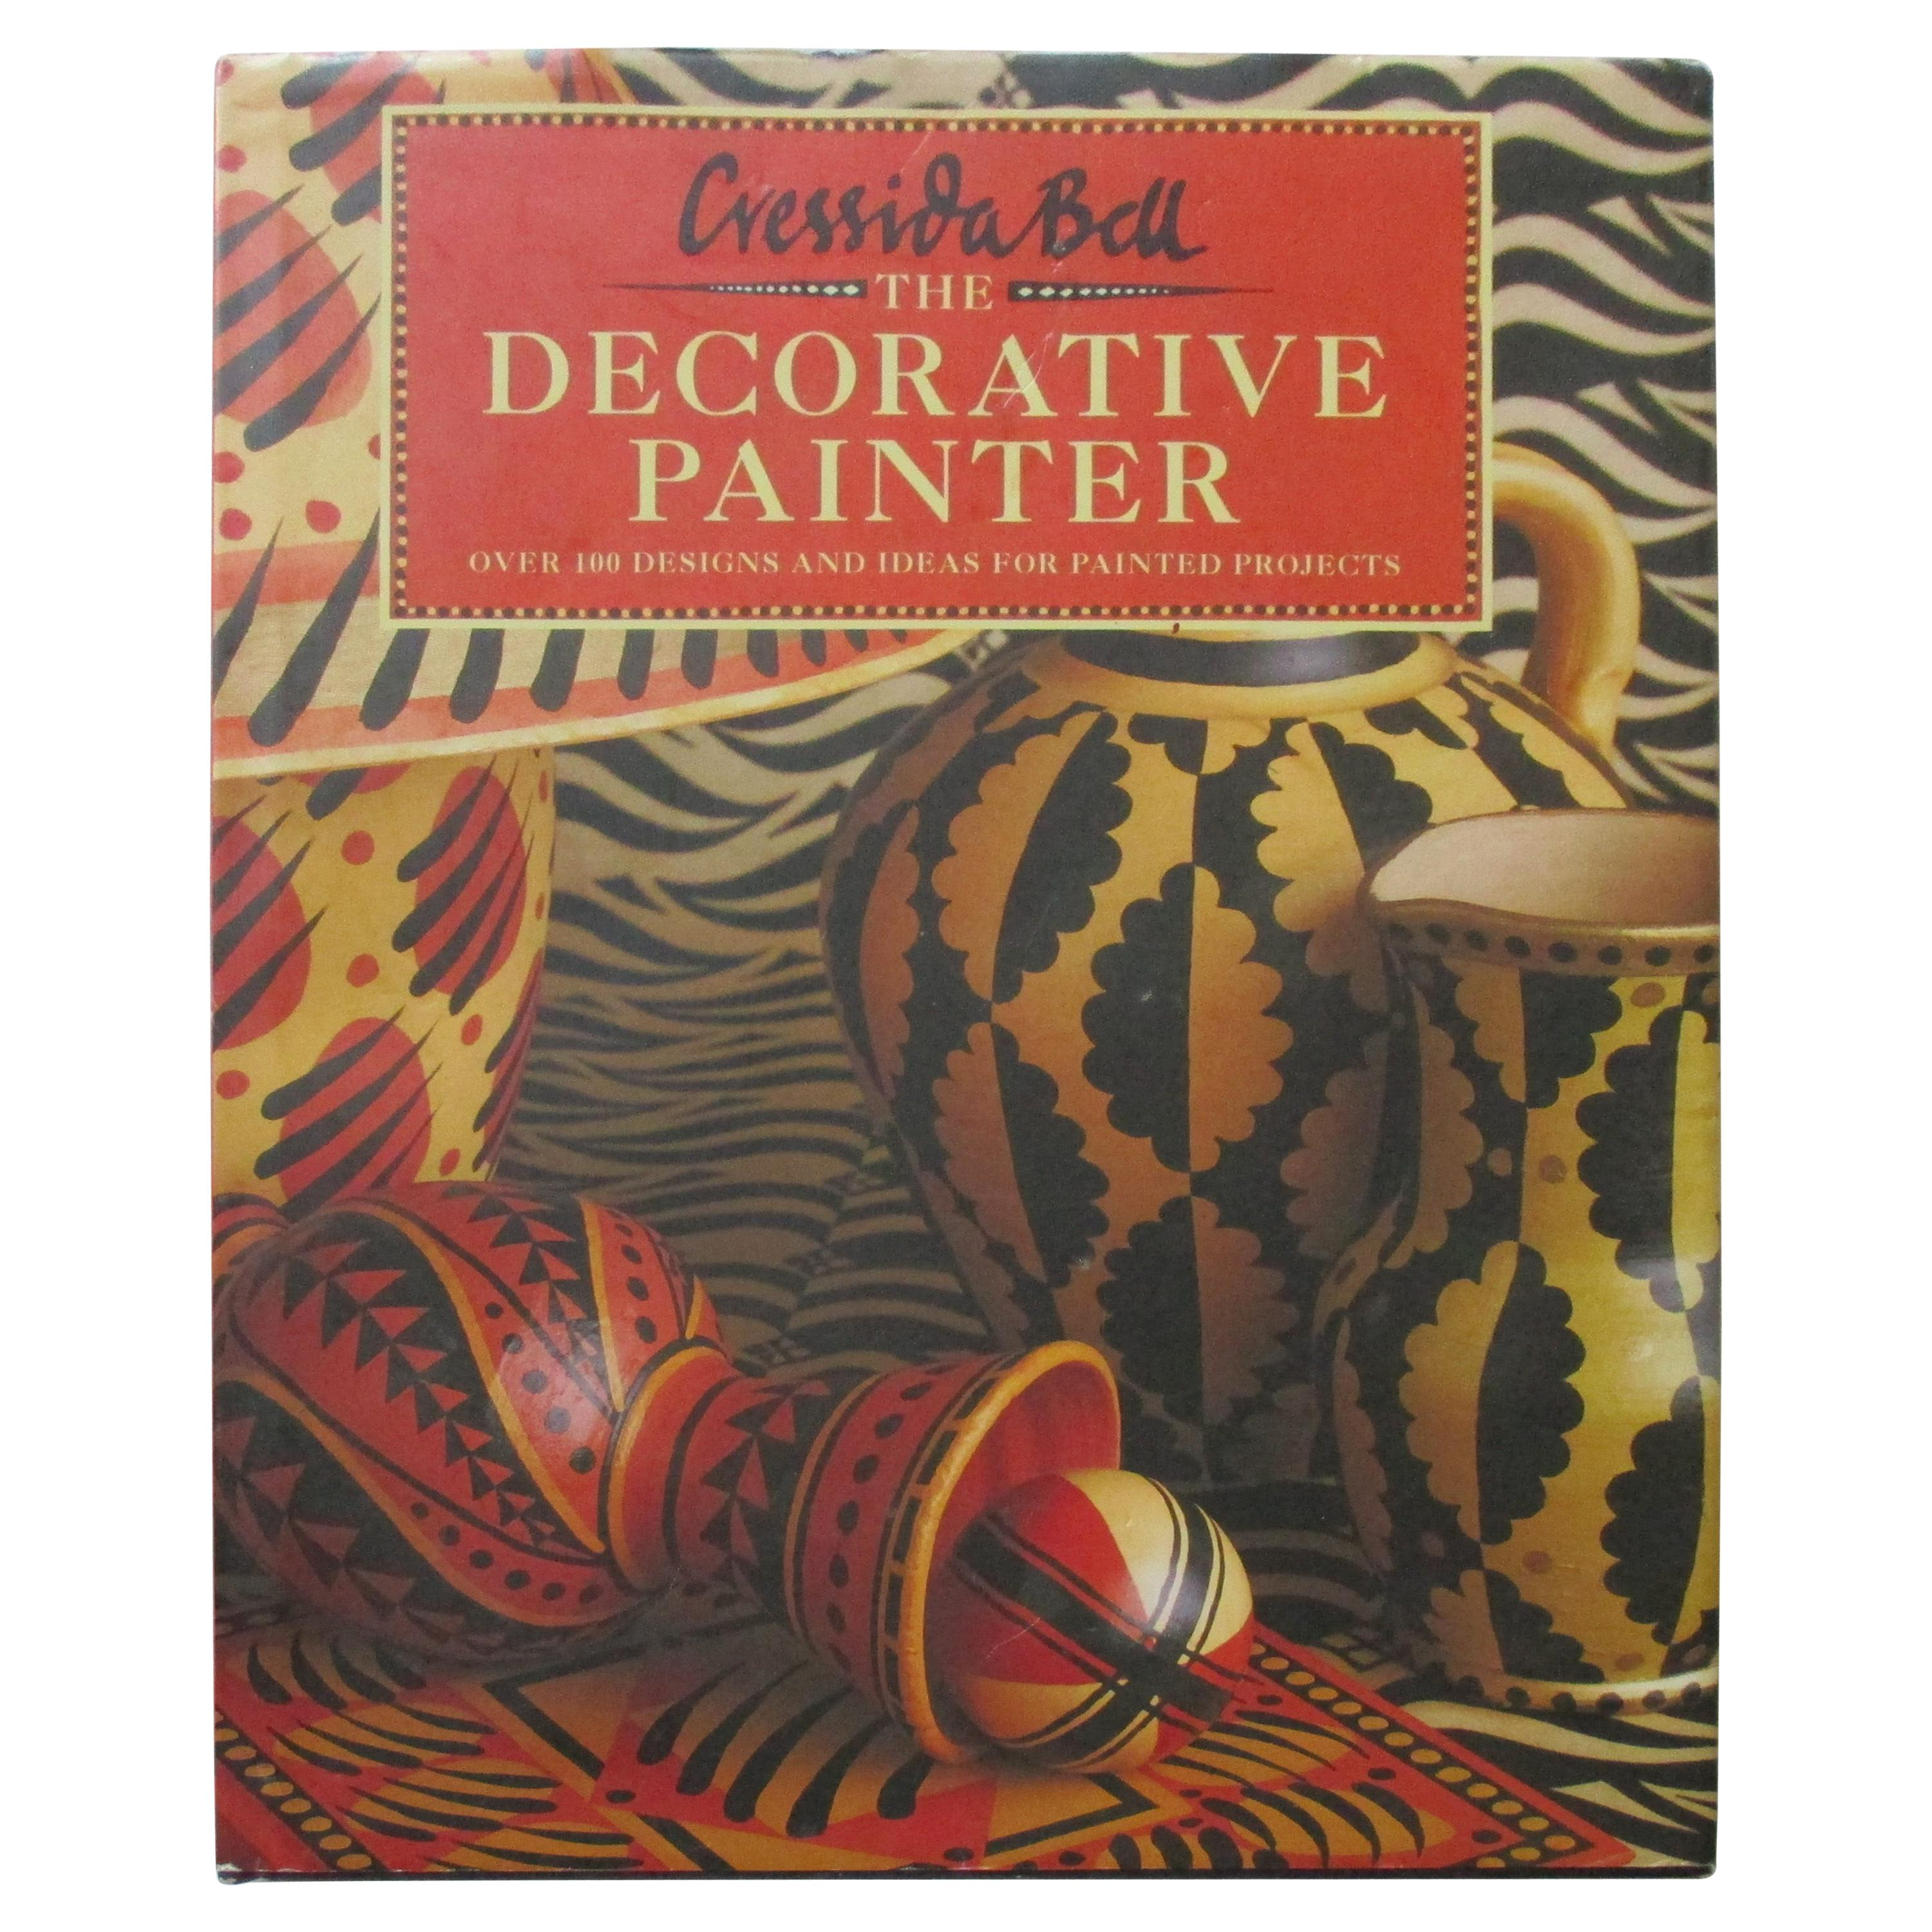 The Decorative Painter Decorating Vintage Hardcover Book